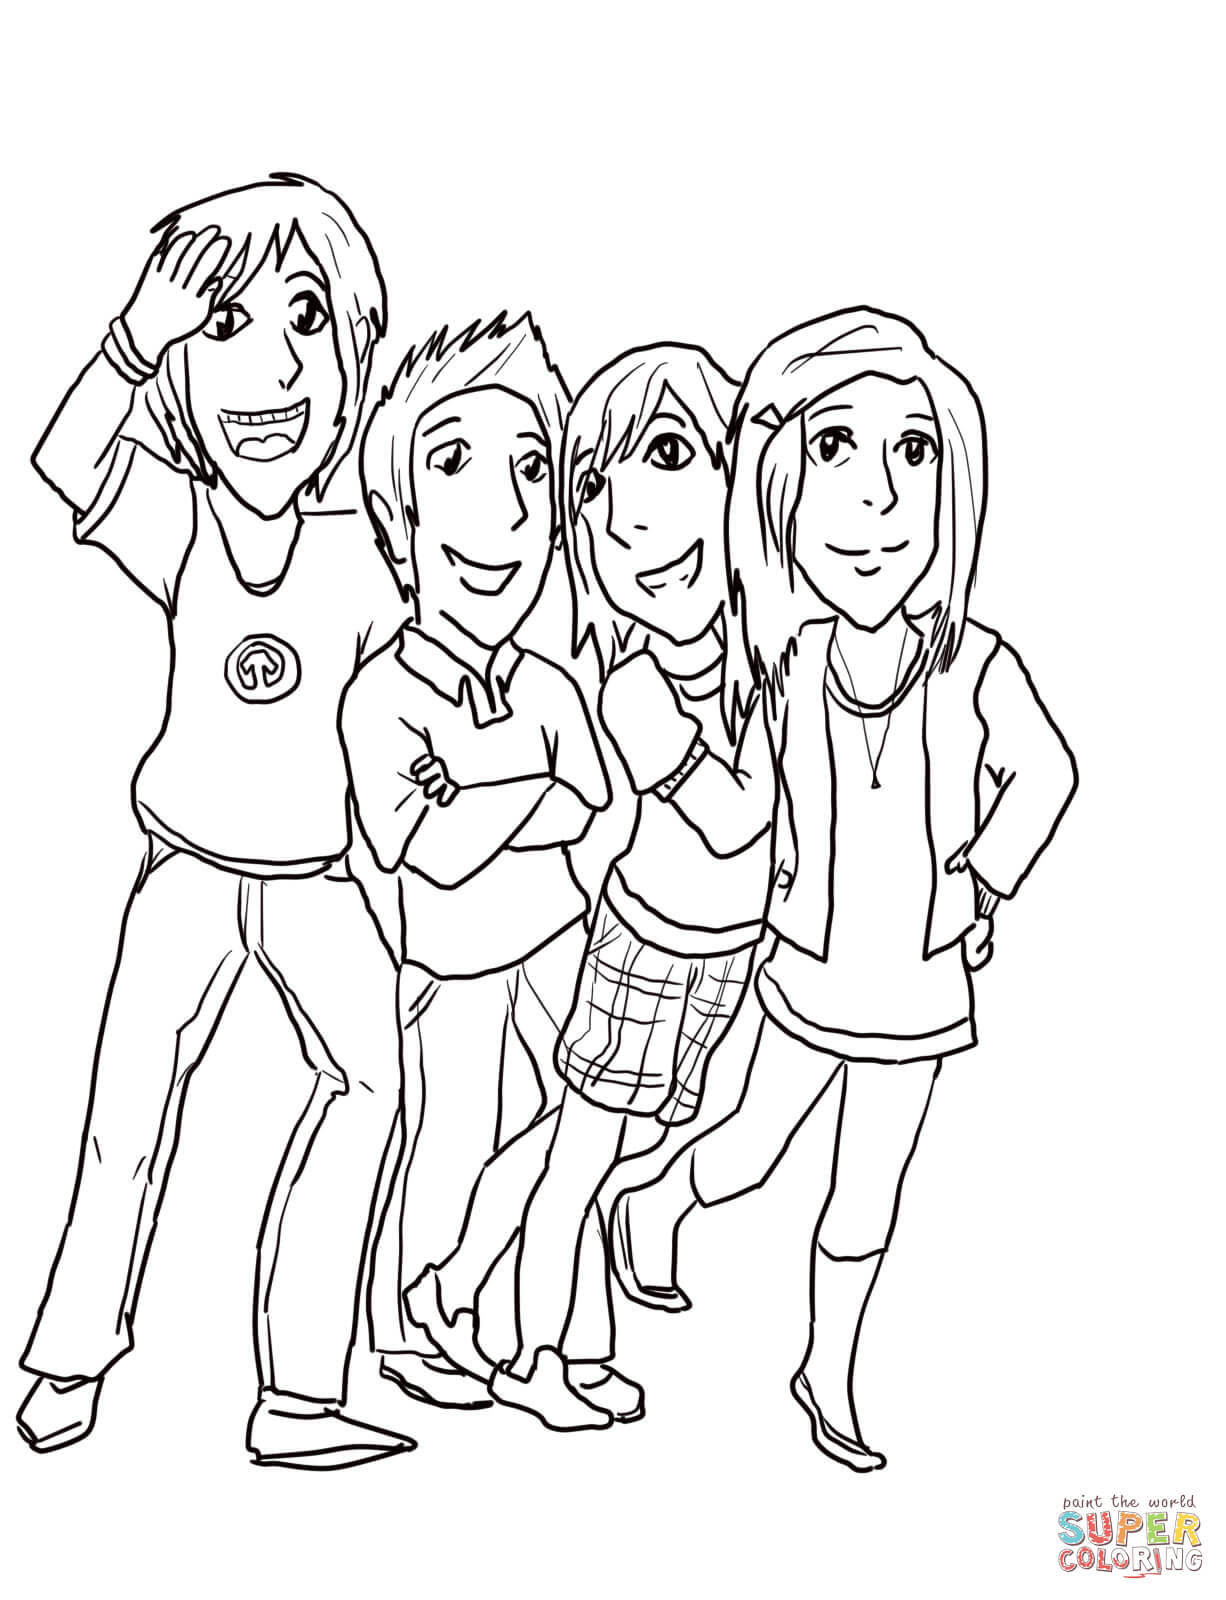 Printable icarly coloring pages coloring home for Icarly coloring pages